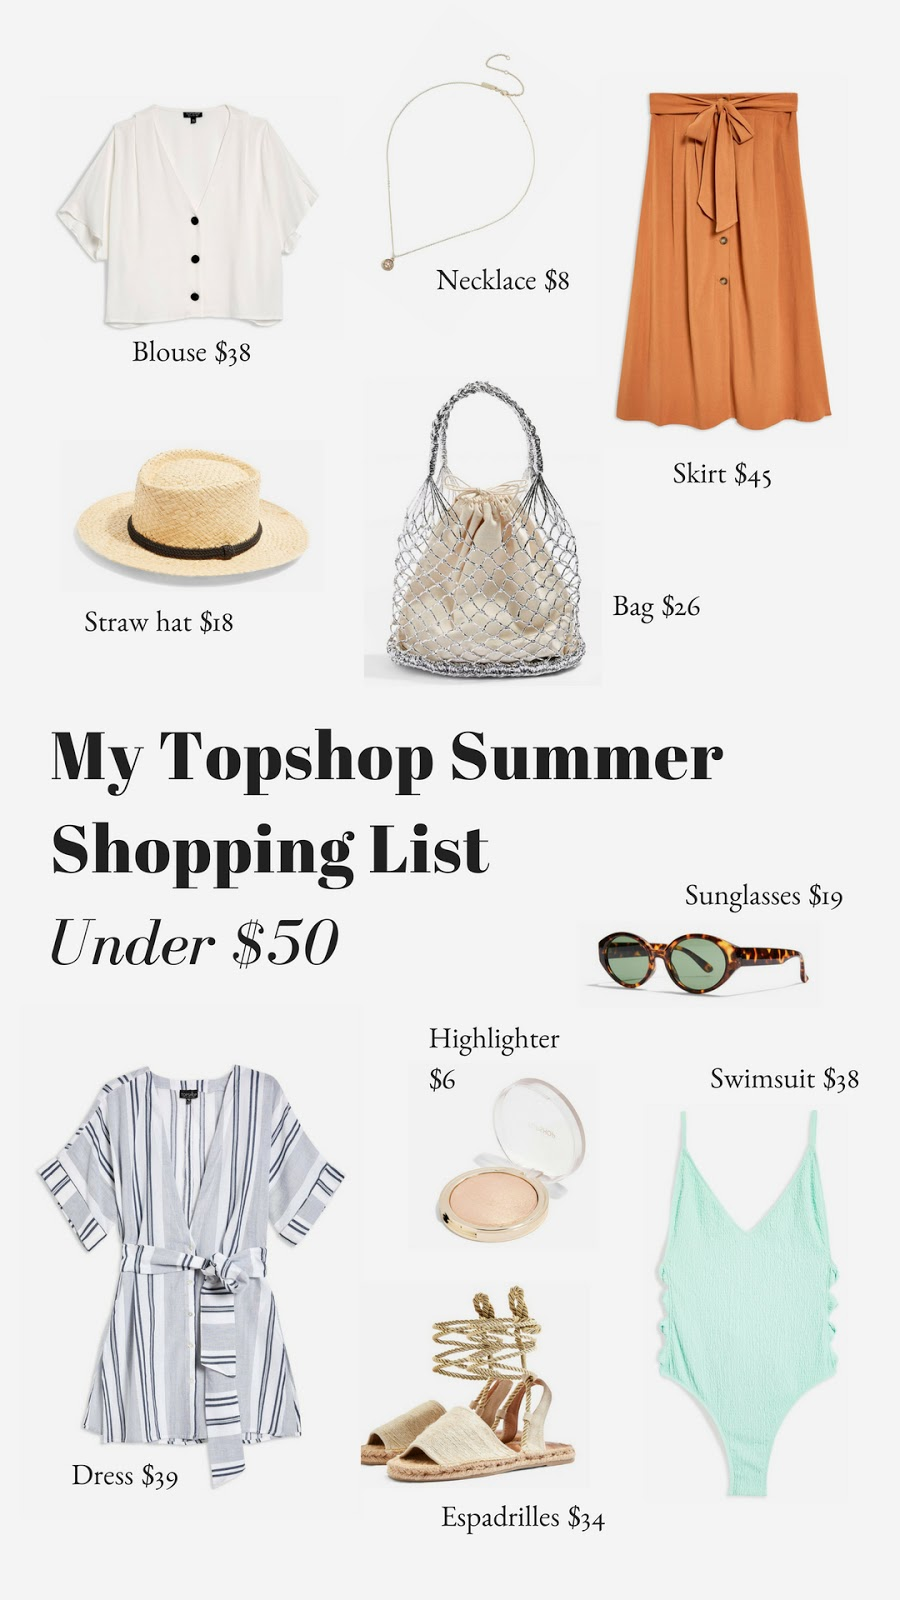 My Topshop Summer Shopping List (Under $50)